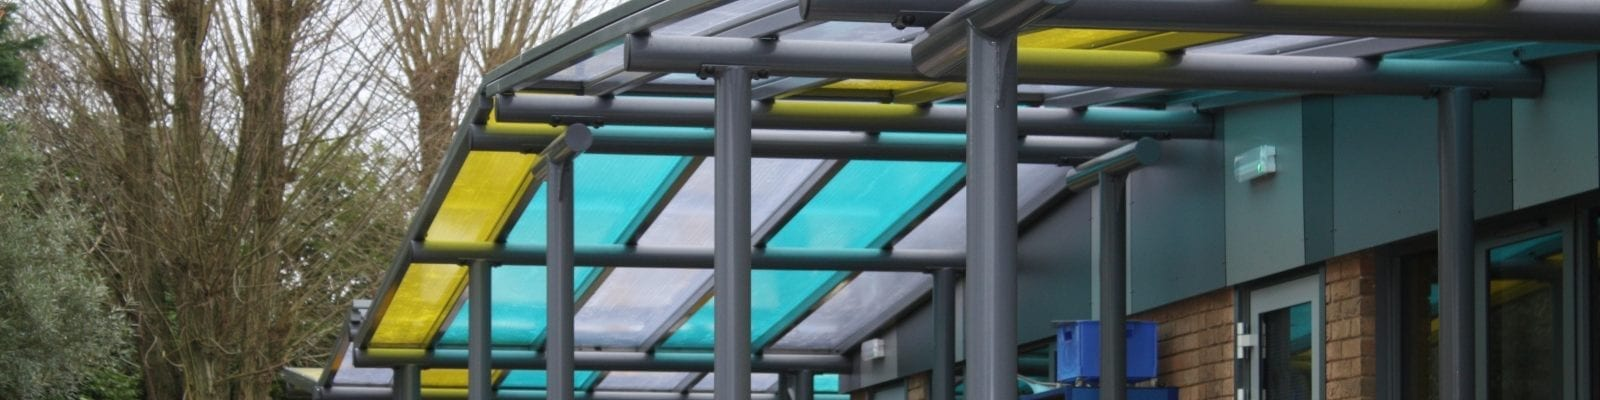 Colourful canopies we made for Oundle Primary School